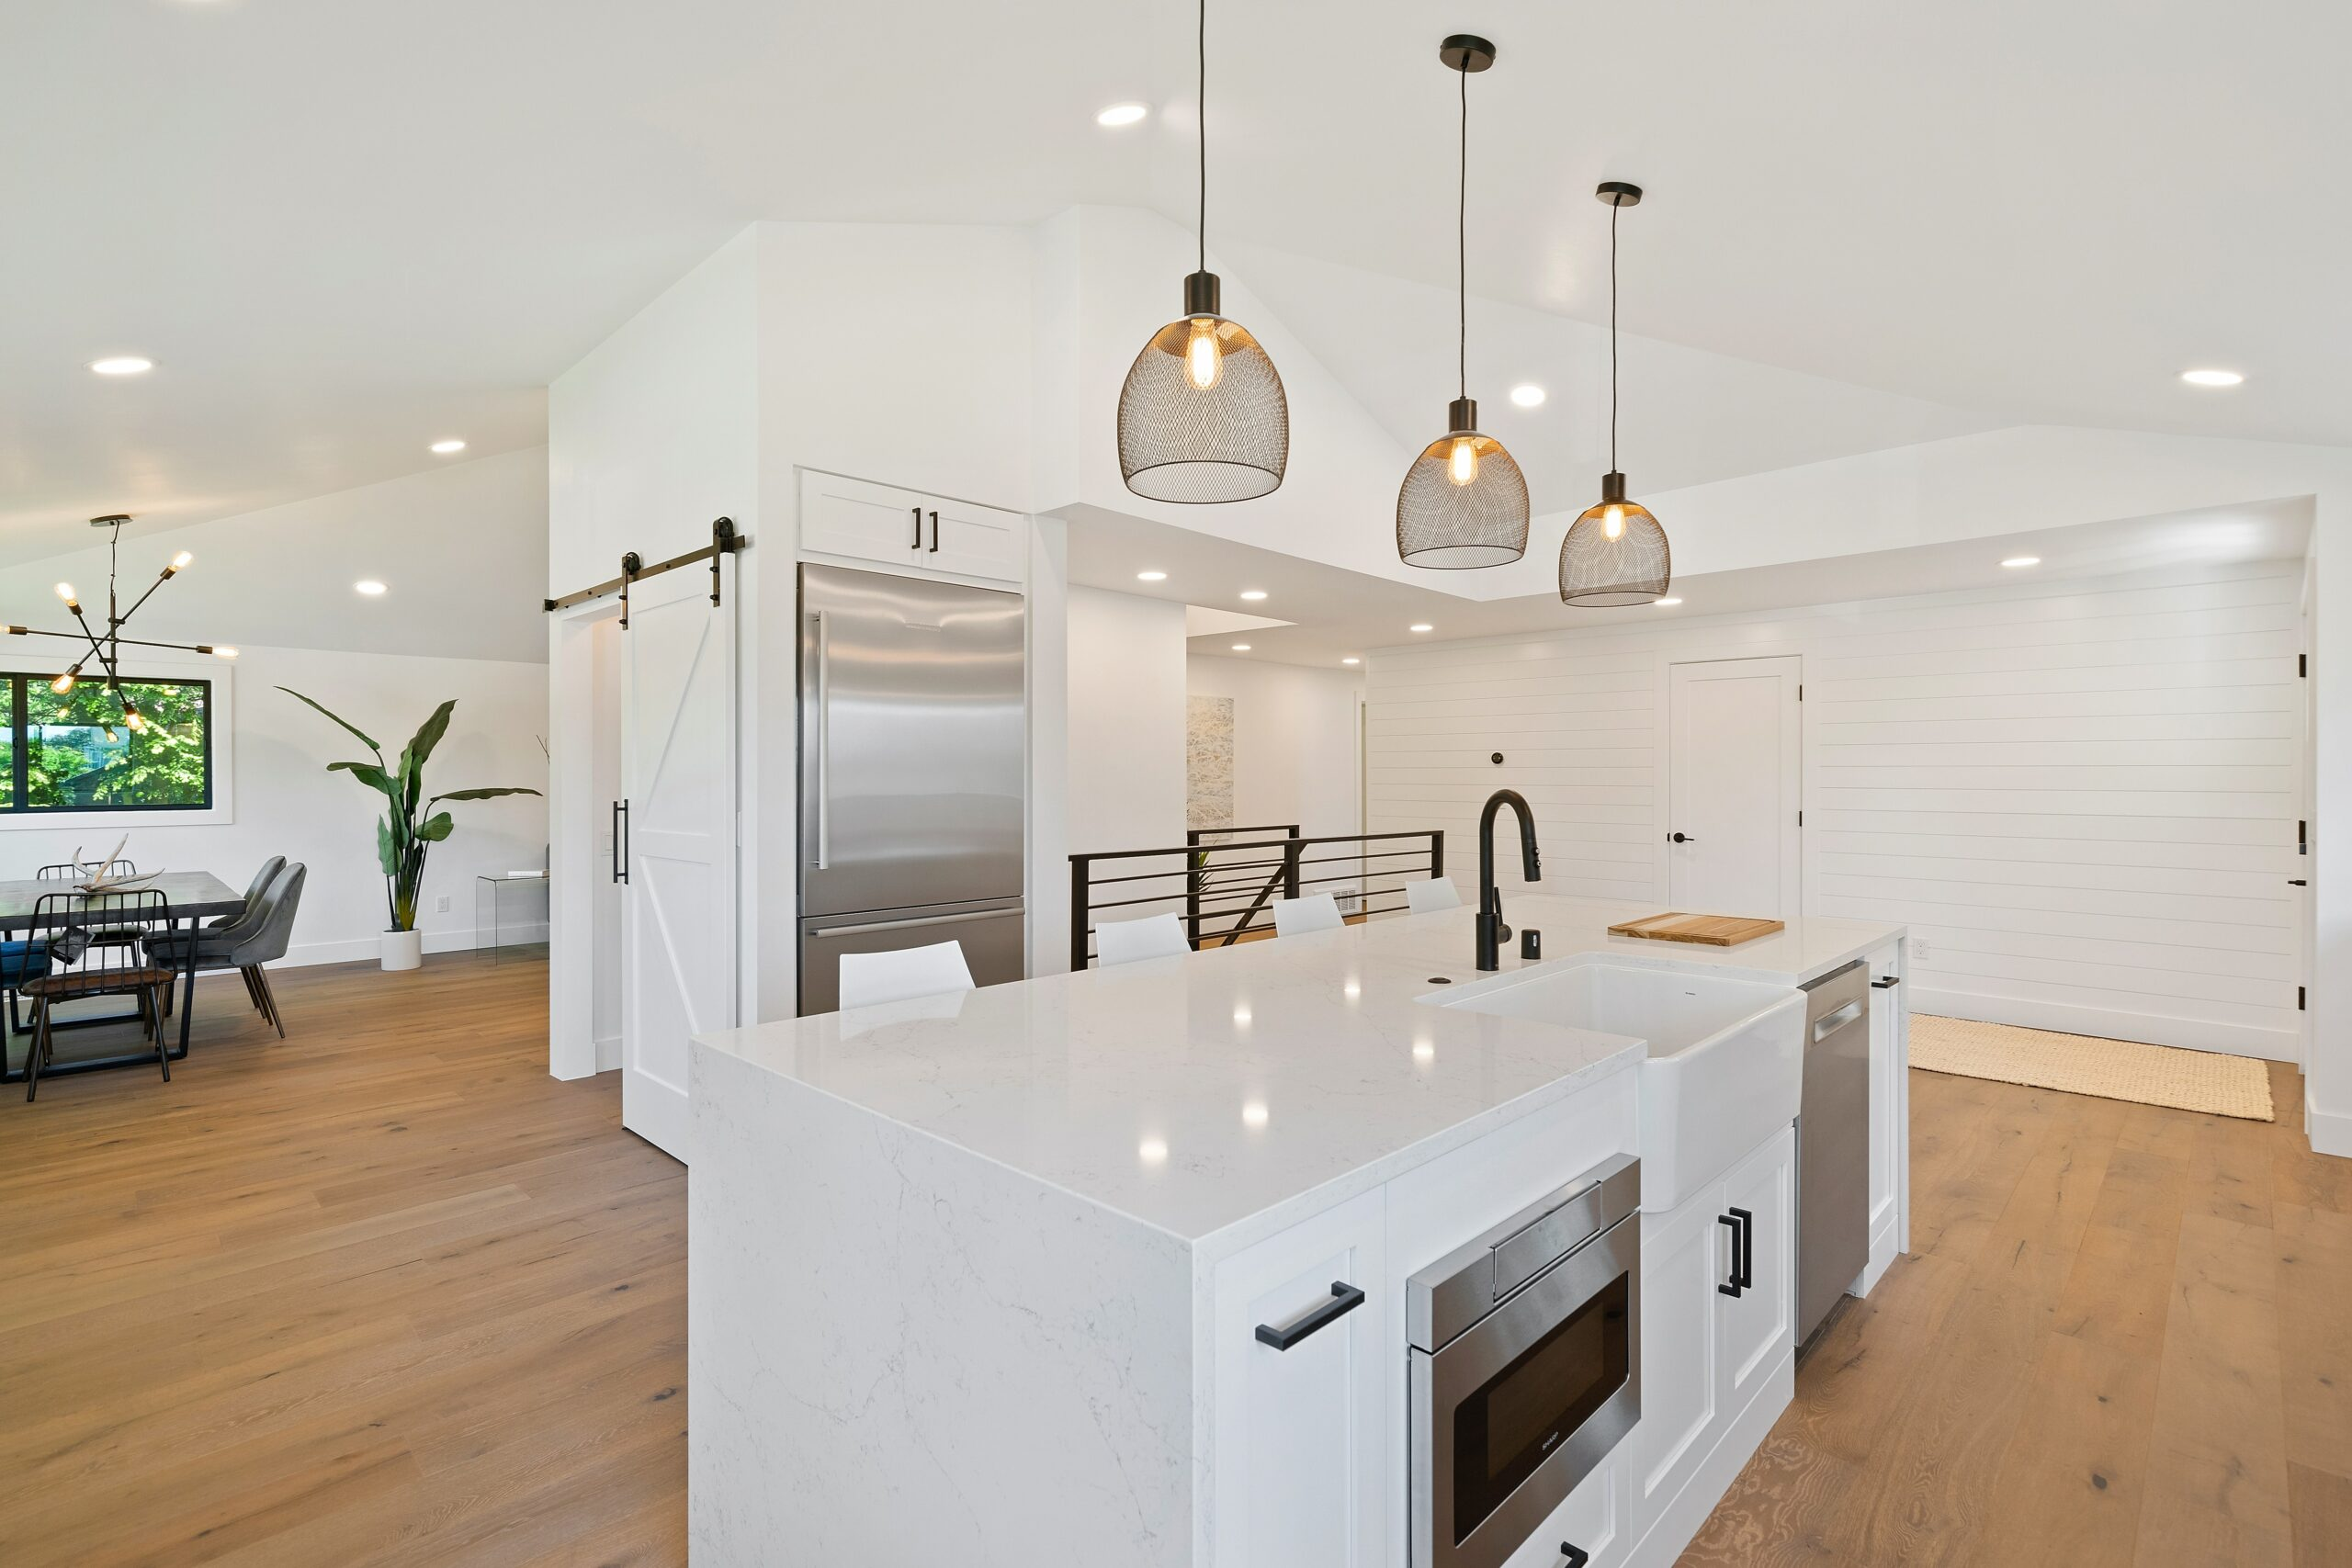 Example of a kitchen ready for an open house in Cincinnati